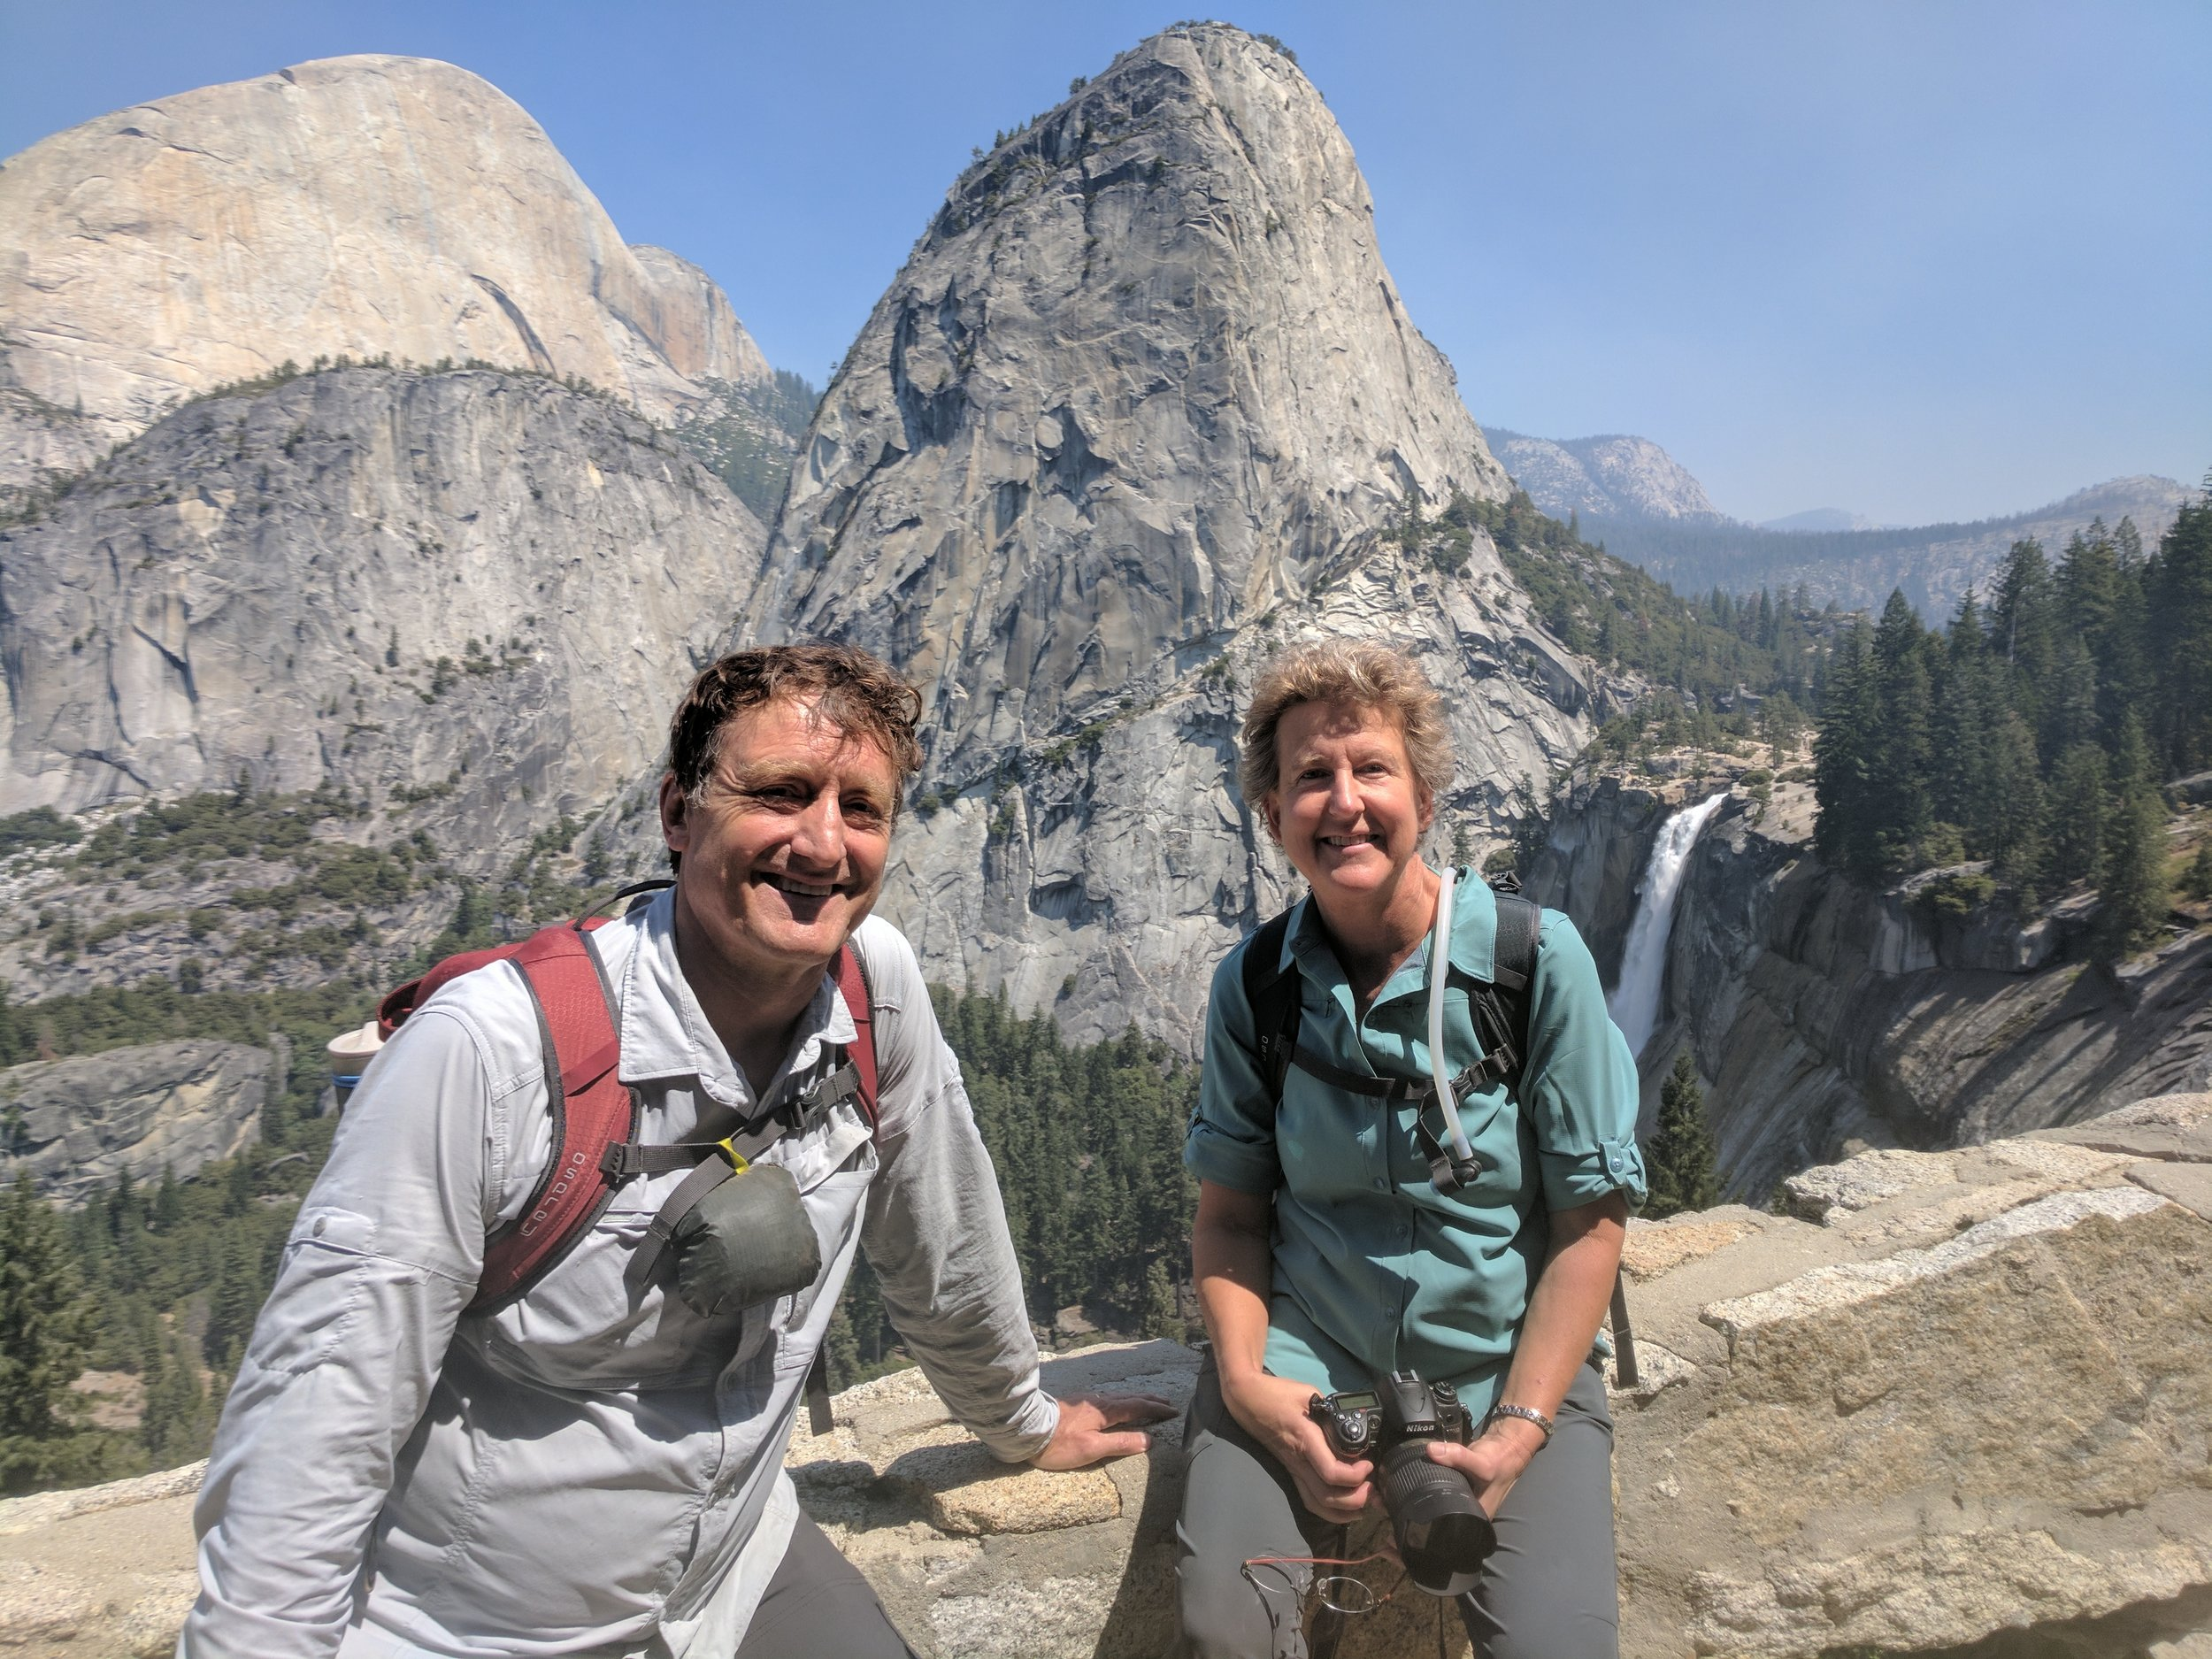 Nevada Falls, Liberty Cap (behind us) and Half Dome